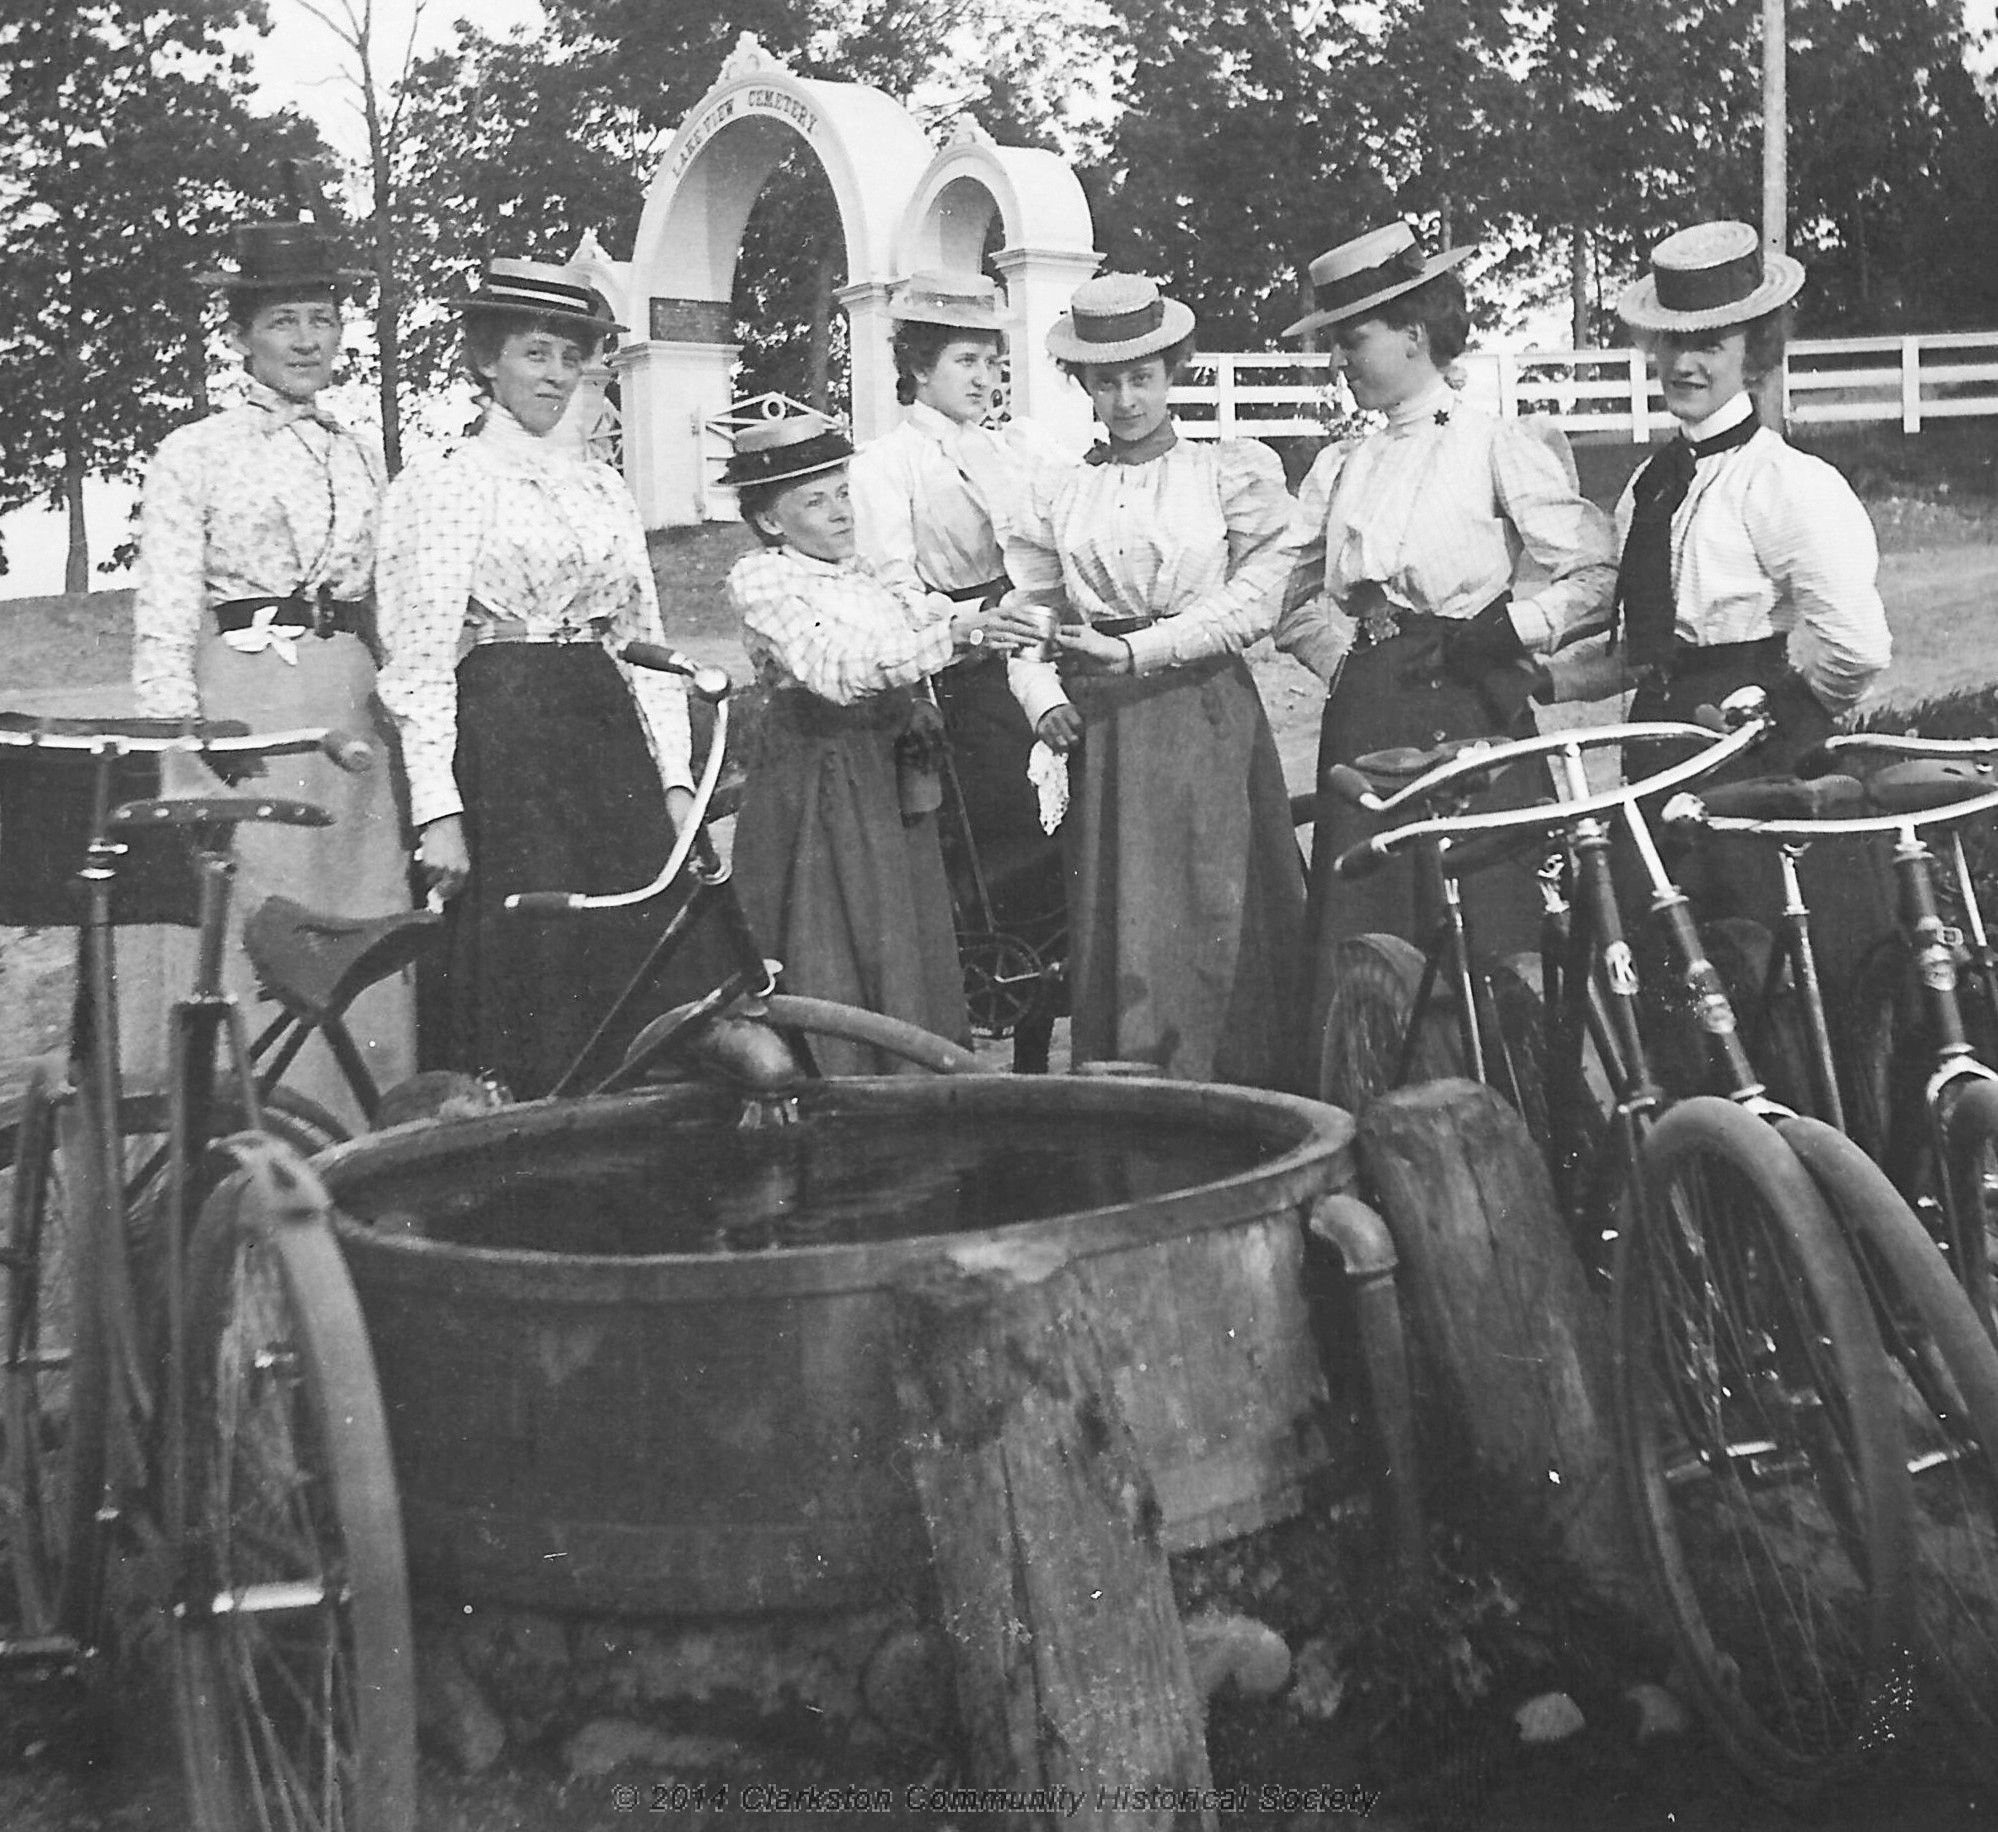 Ladies with Bicycles